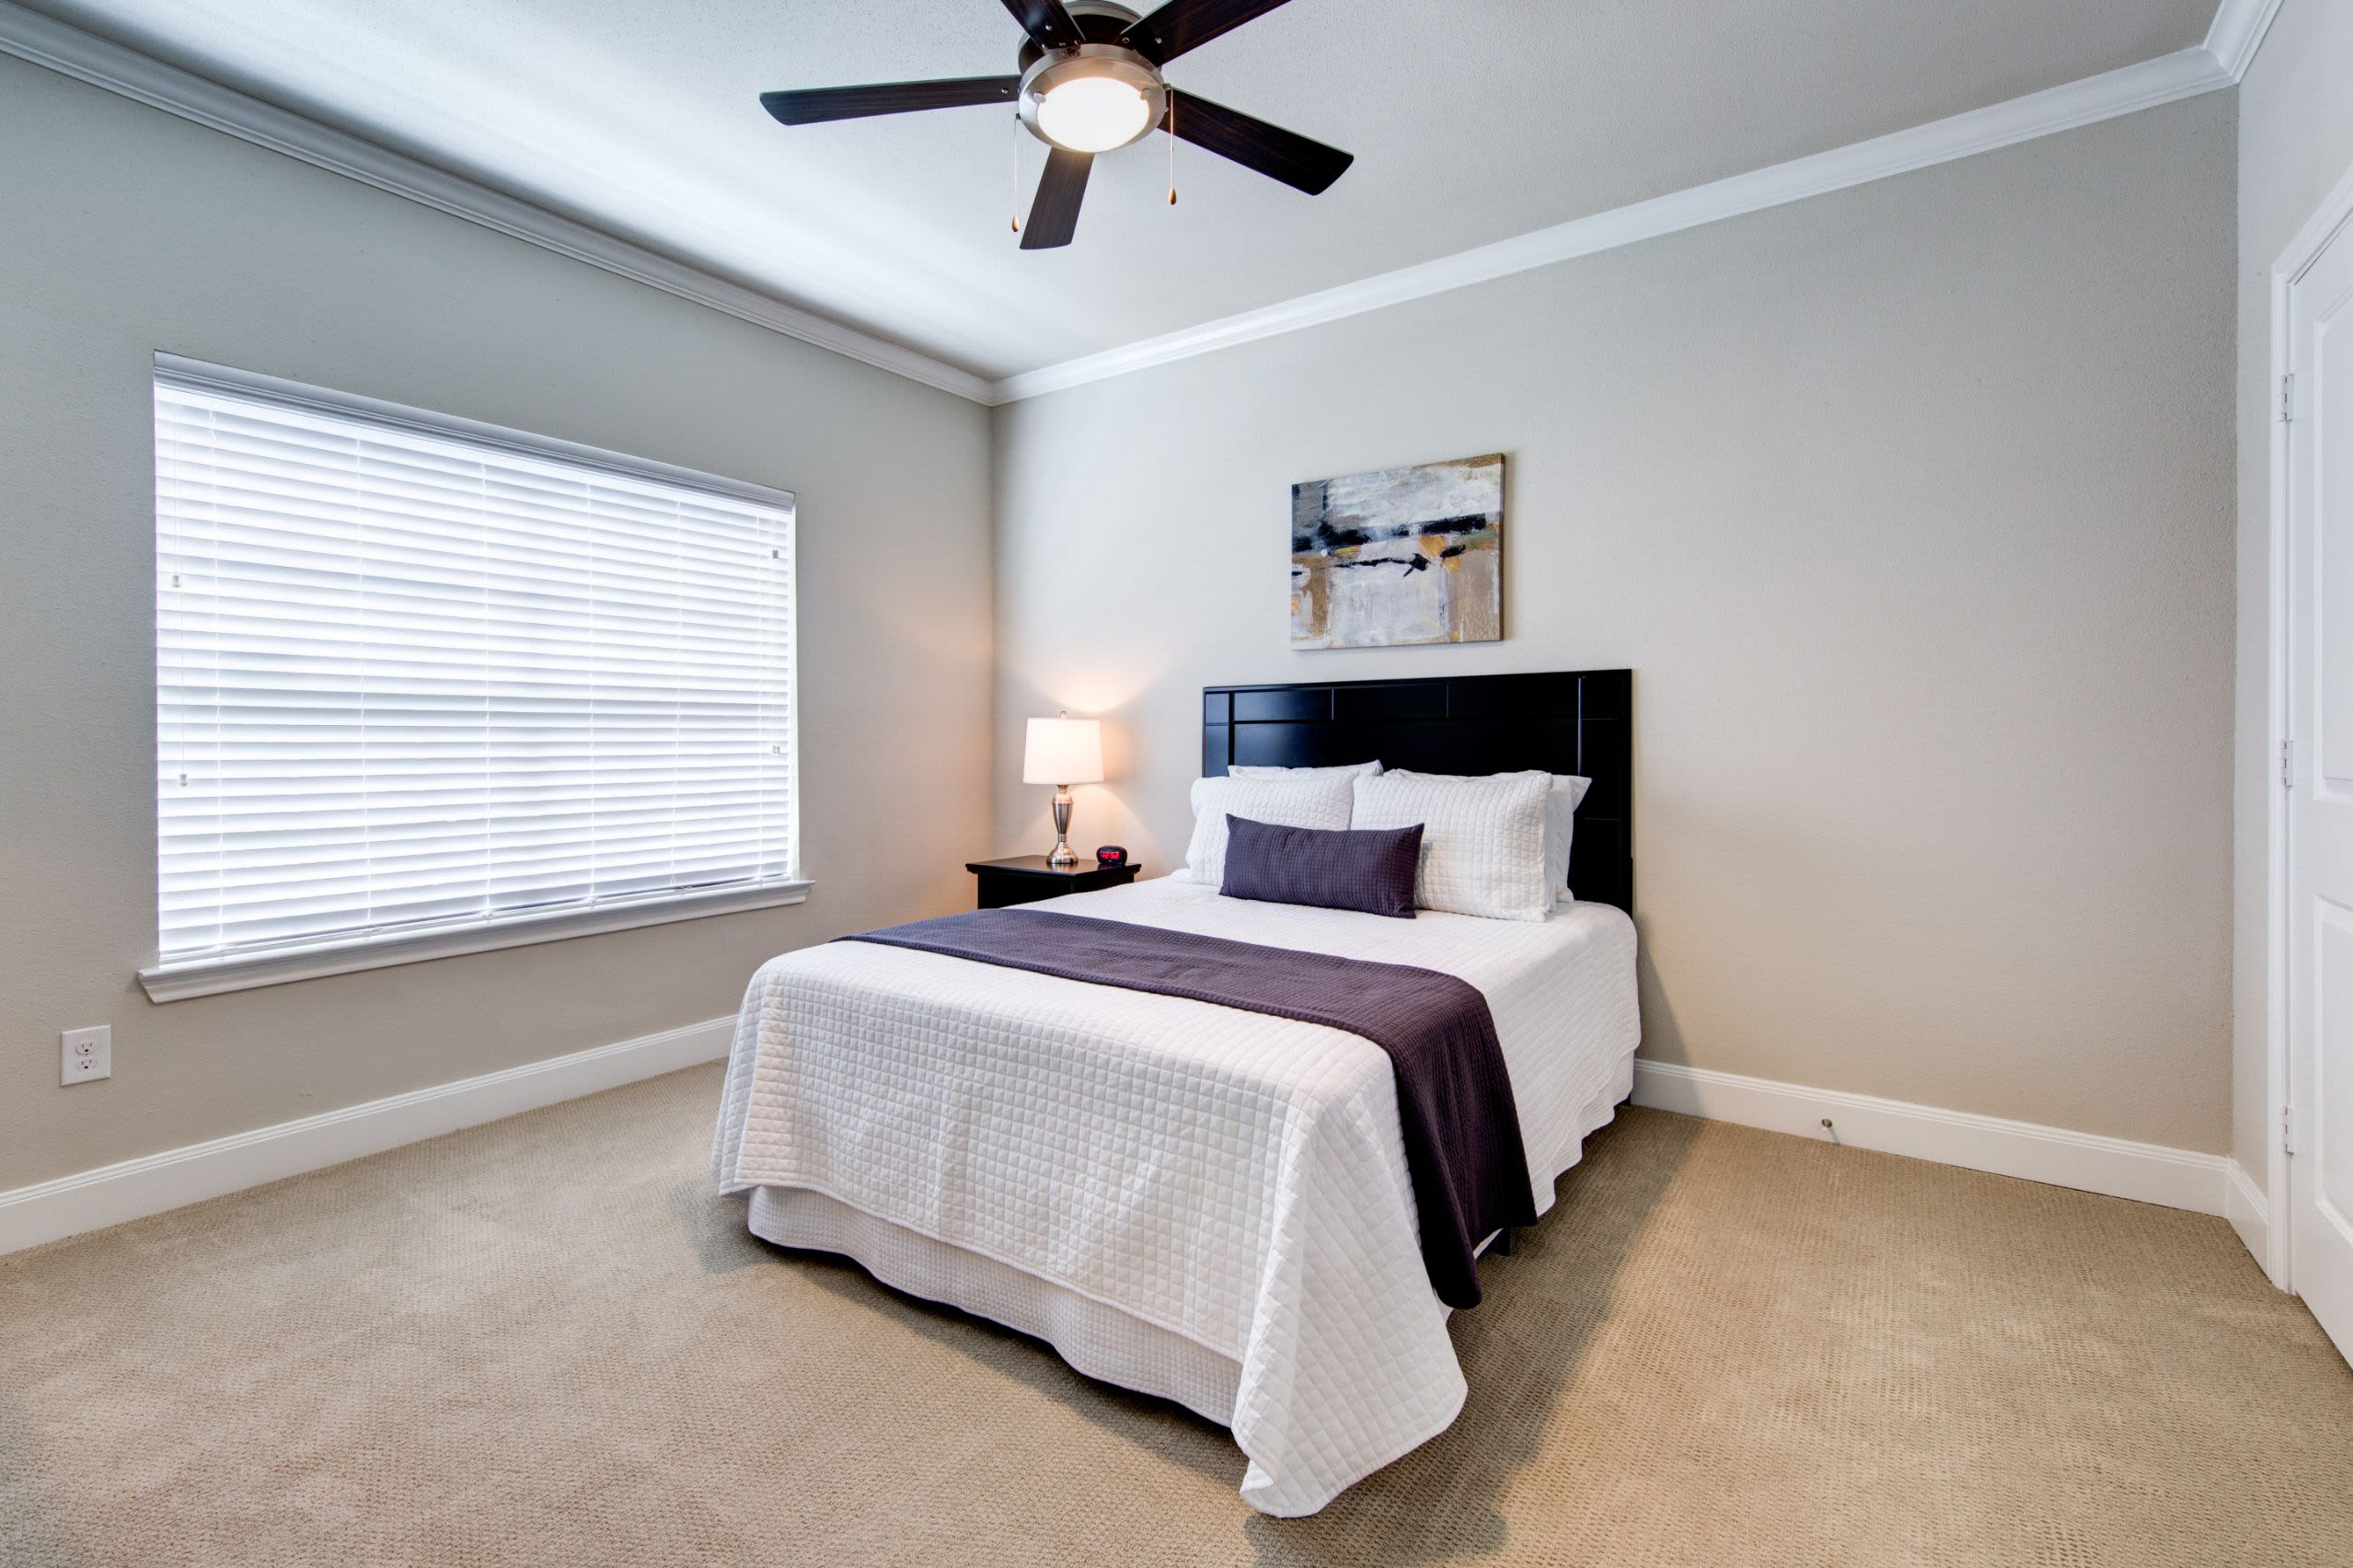 Bedroom with ceiling fan at Marquis on Memorial in Houston, Texas